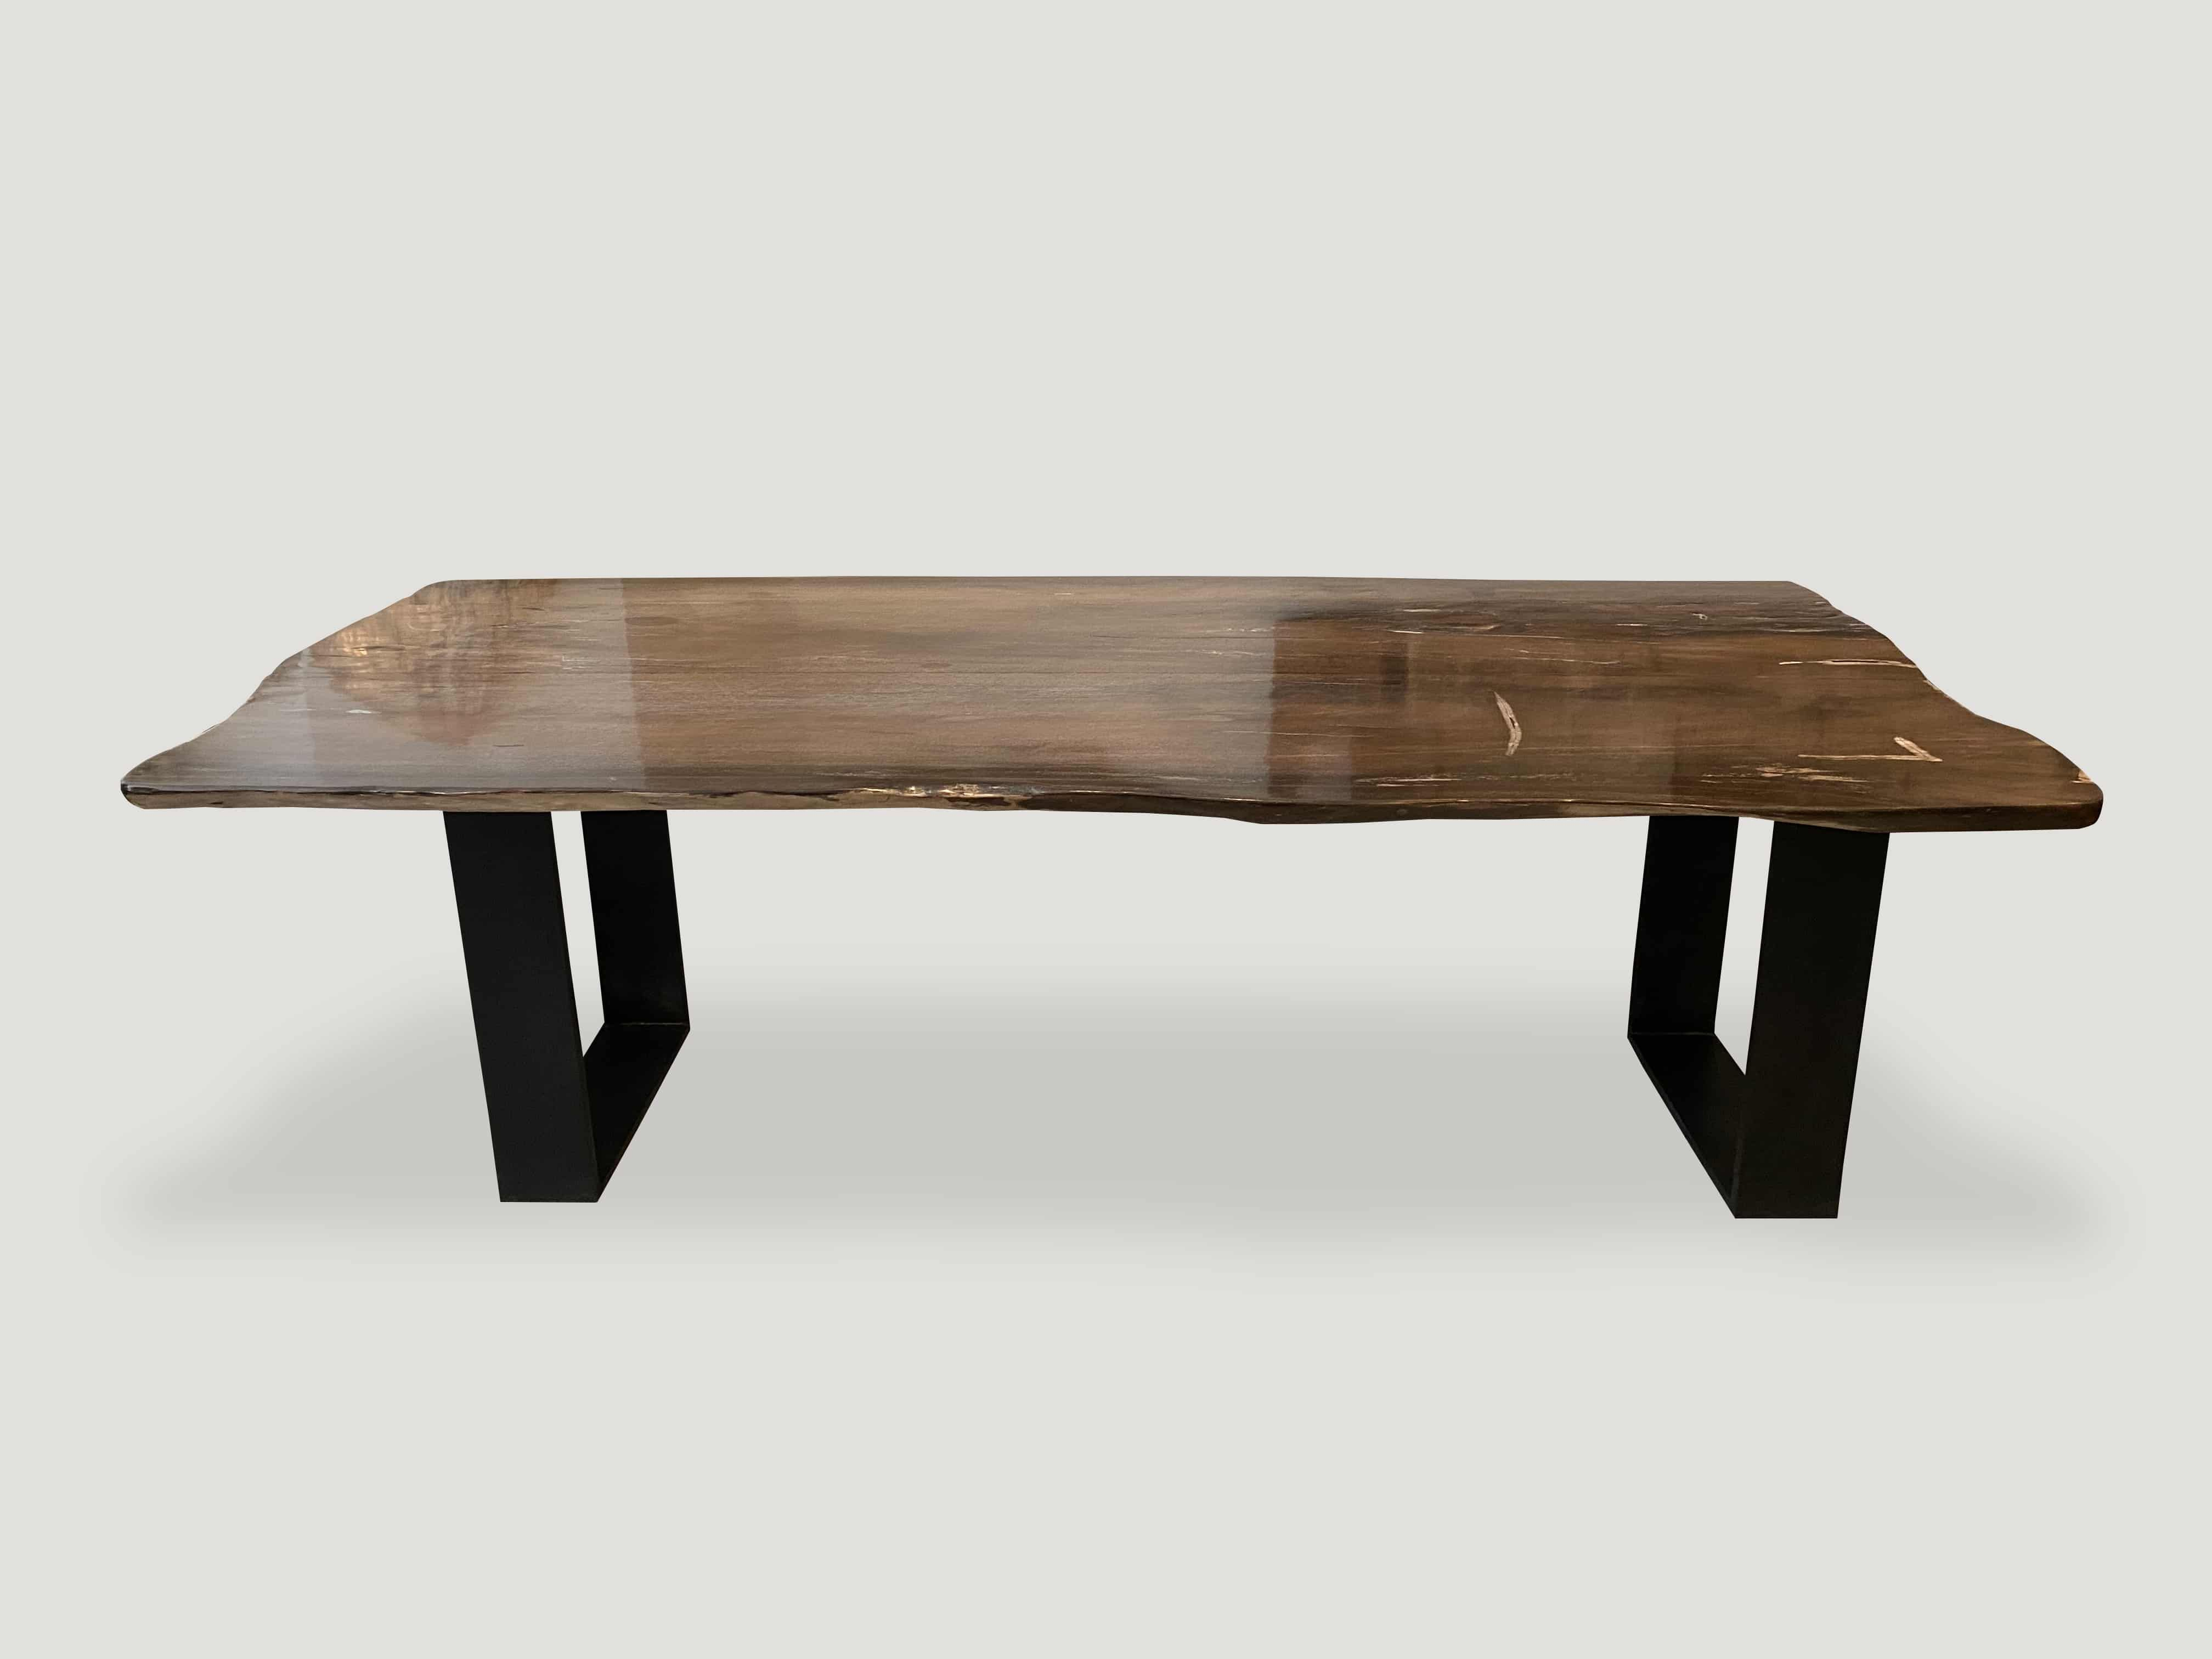 Super Smooth Petrified Wood Dining Table 88ch Andrianna Shamaris Coffee Table Wood Wood Dining Table Dining Table [ 3024 x 4032 Pixel ]